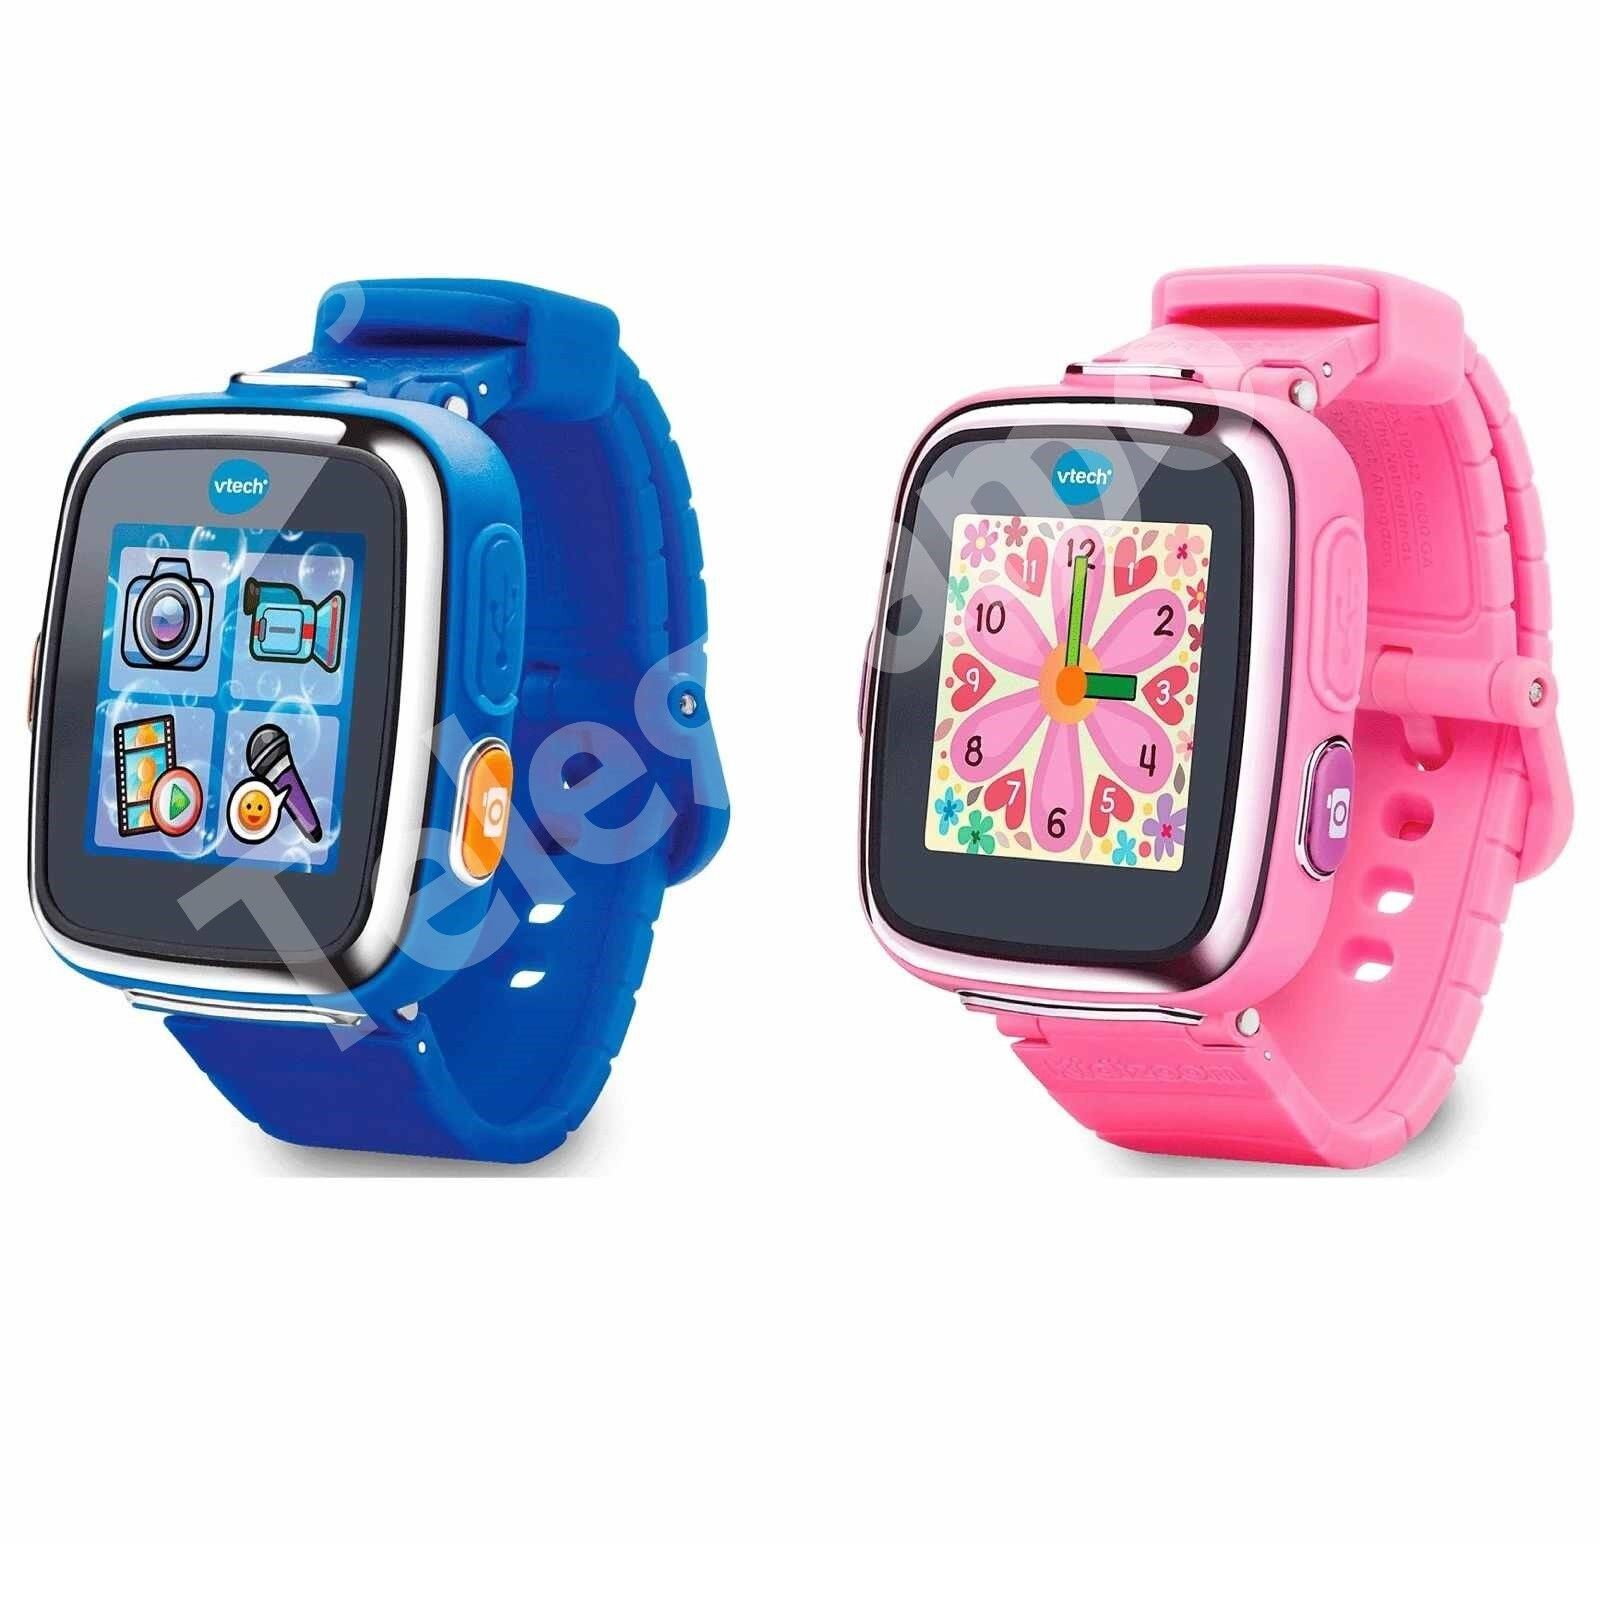 Smart Watch VTech Kidizoom  DX Colour Touch Screen bluee Pink (4+ Years)